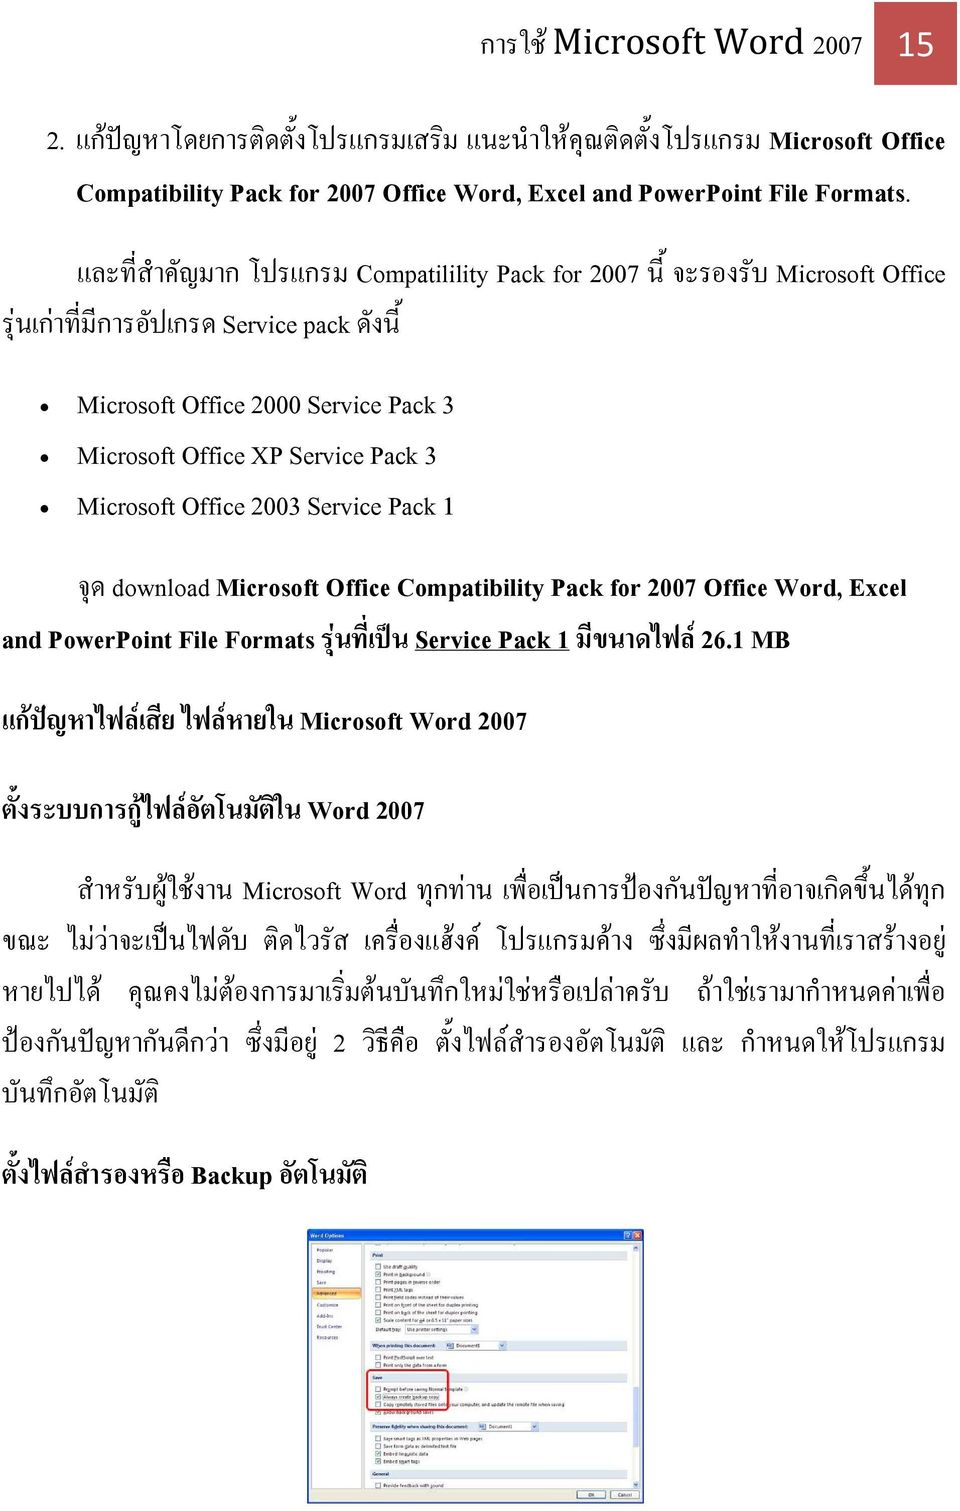 Microsoft Office 2003 Service Pack 1 จ ด download Microsoft Office Compatibility Pack for 2007 Office Word, Excel and PowerPoint File Formats ร นท เป น Service Pack 1 ม ขนาดไฟล 26.